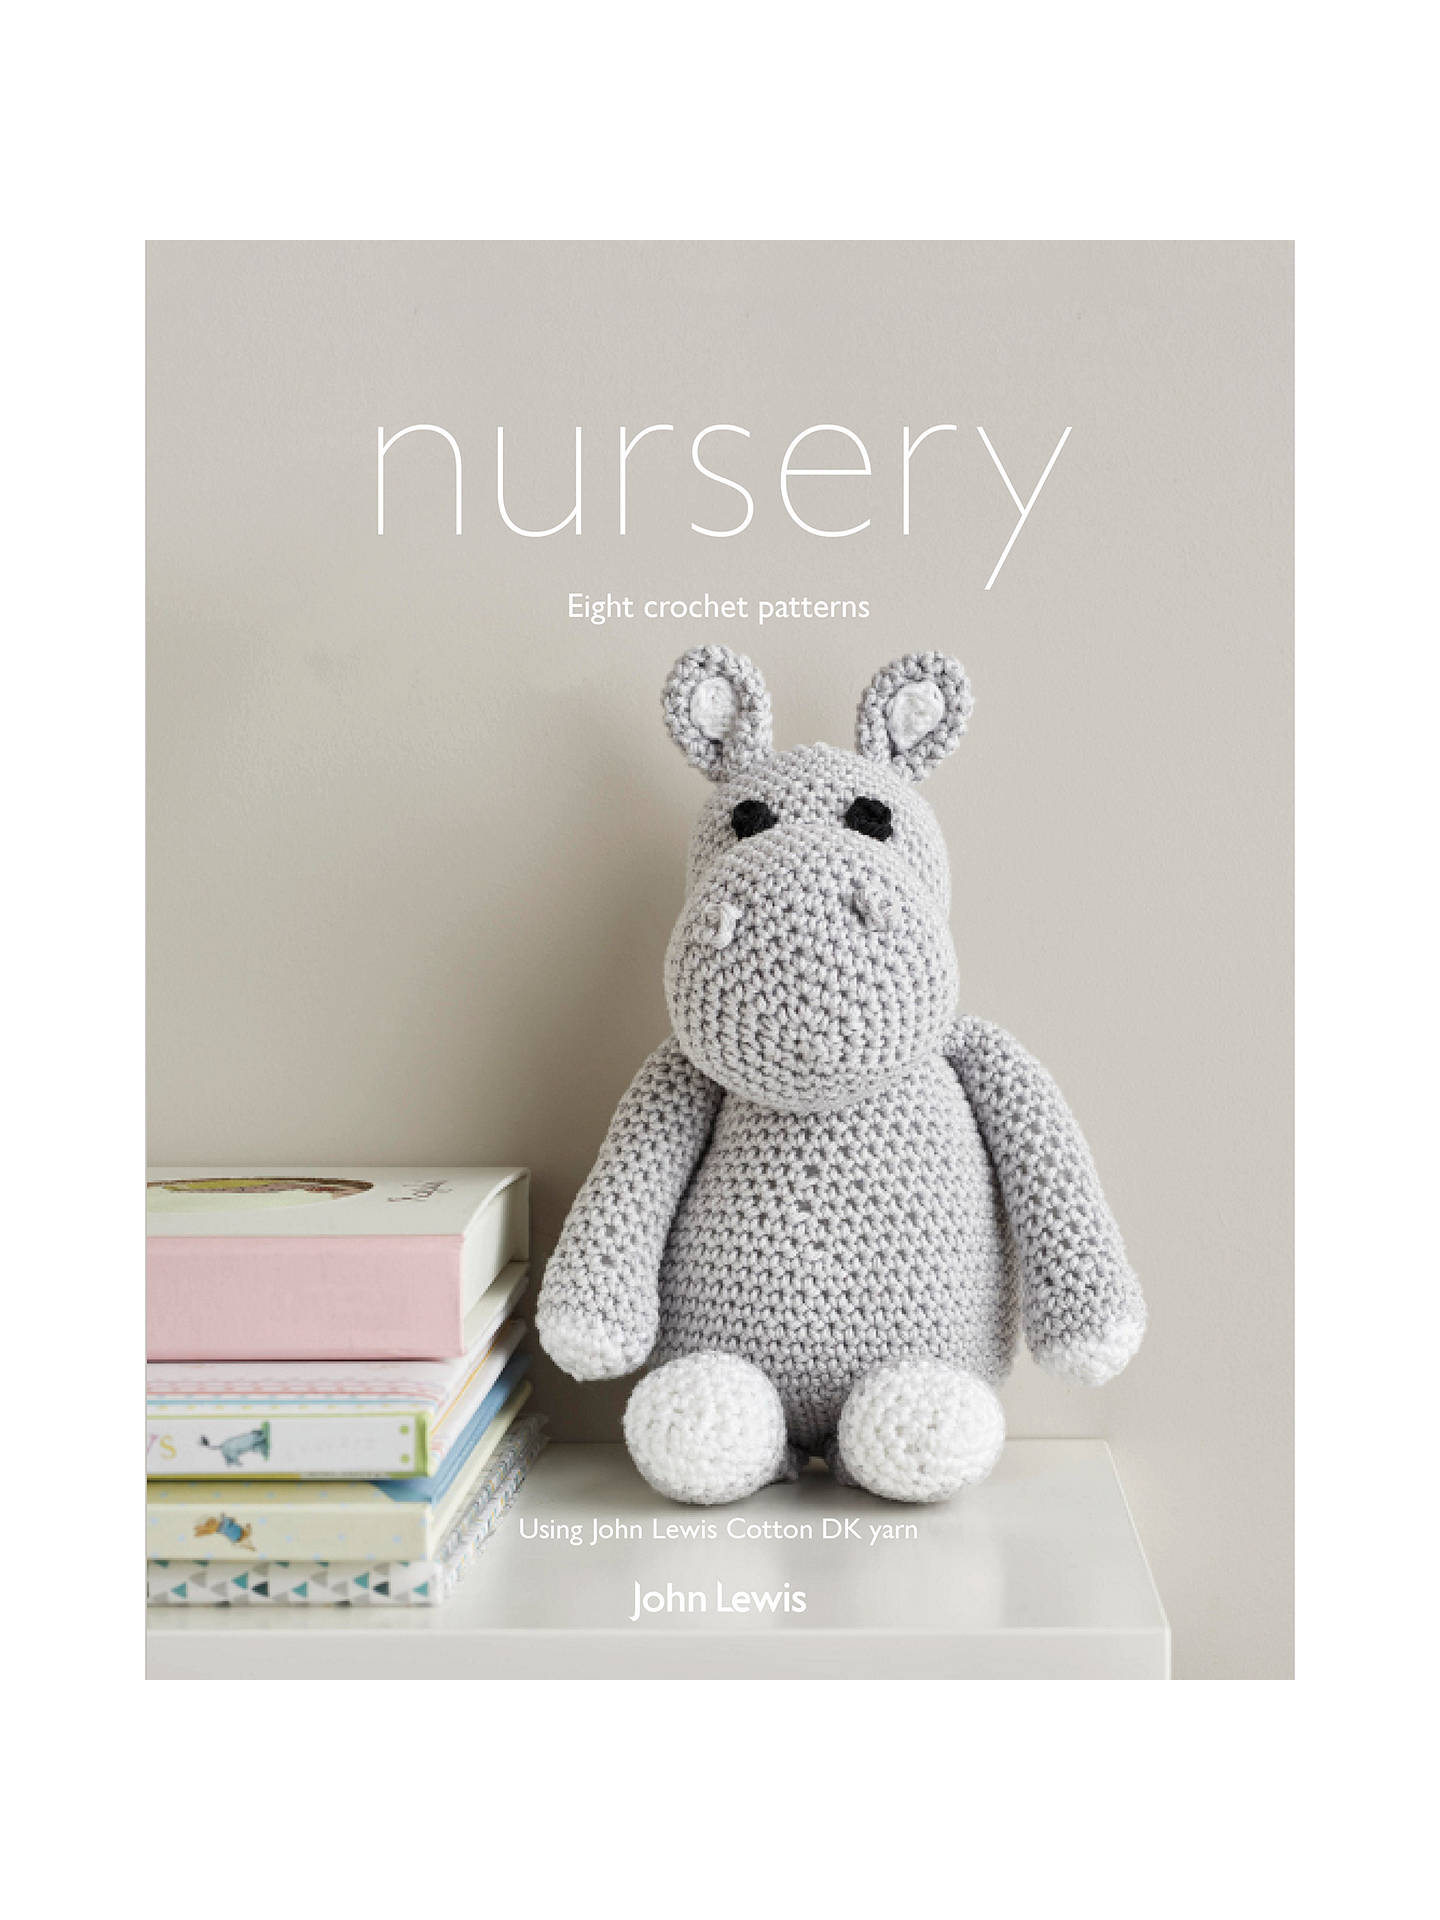 Buy John Lewis & Partners Cotton DK Nursery Crochet Pattern Book Online at johnlewis.com